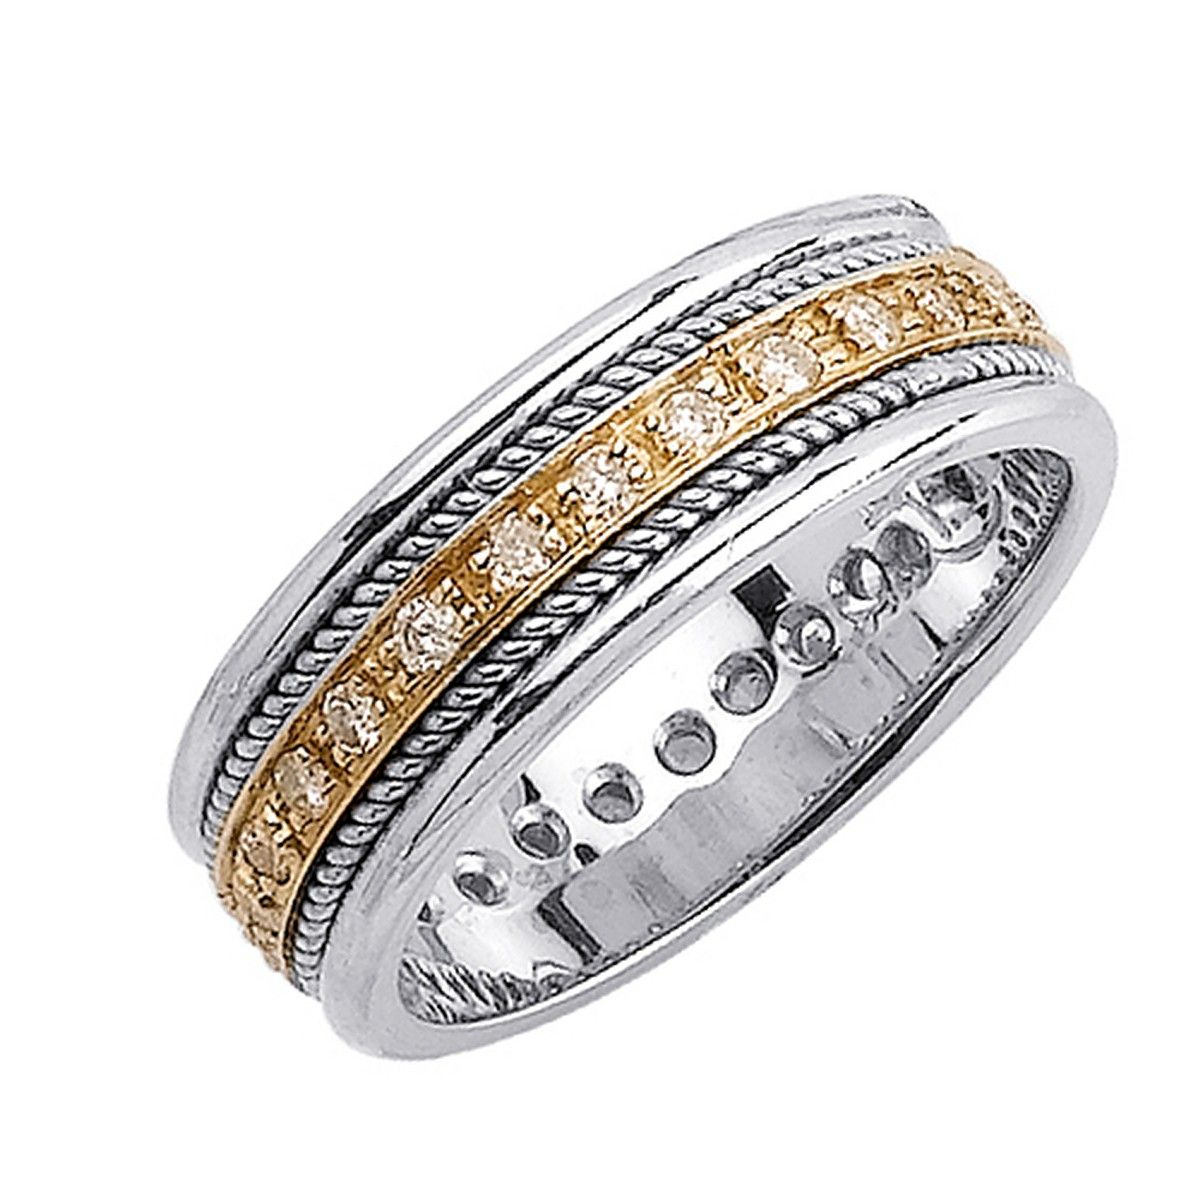 Wedding Bands For Men How To Choose Them The Wedding Ku